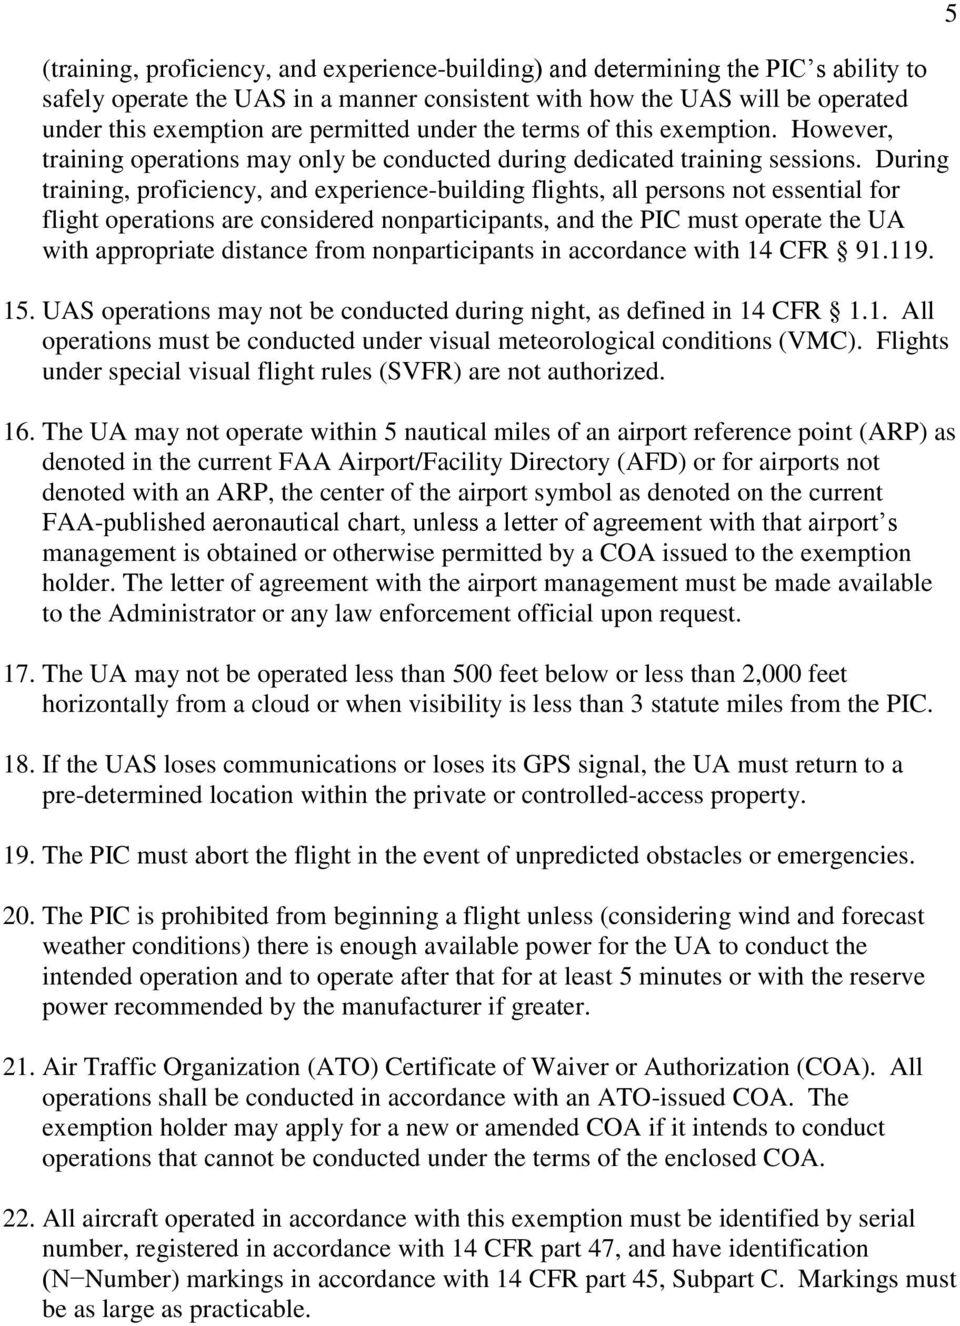 During training, proficiency, and experience-building flights, all persons not essential for flight operations are considered nonparticipants, and the PIC must operate the UA with appropriate